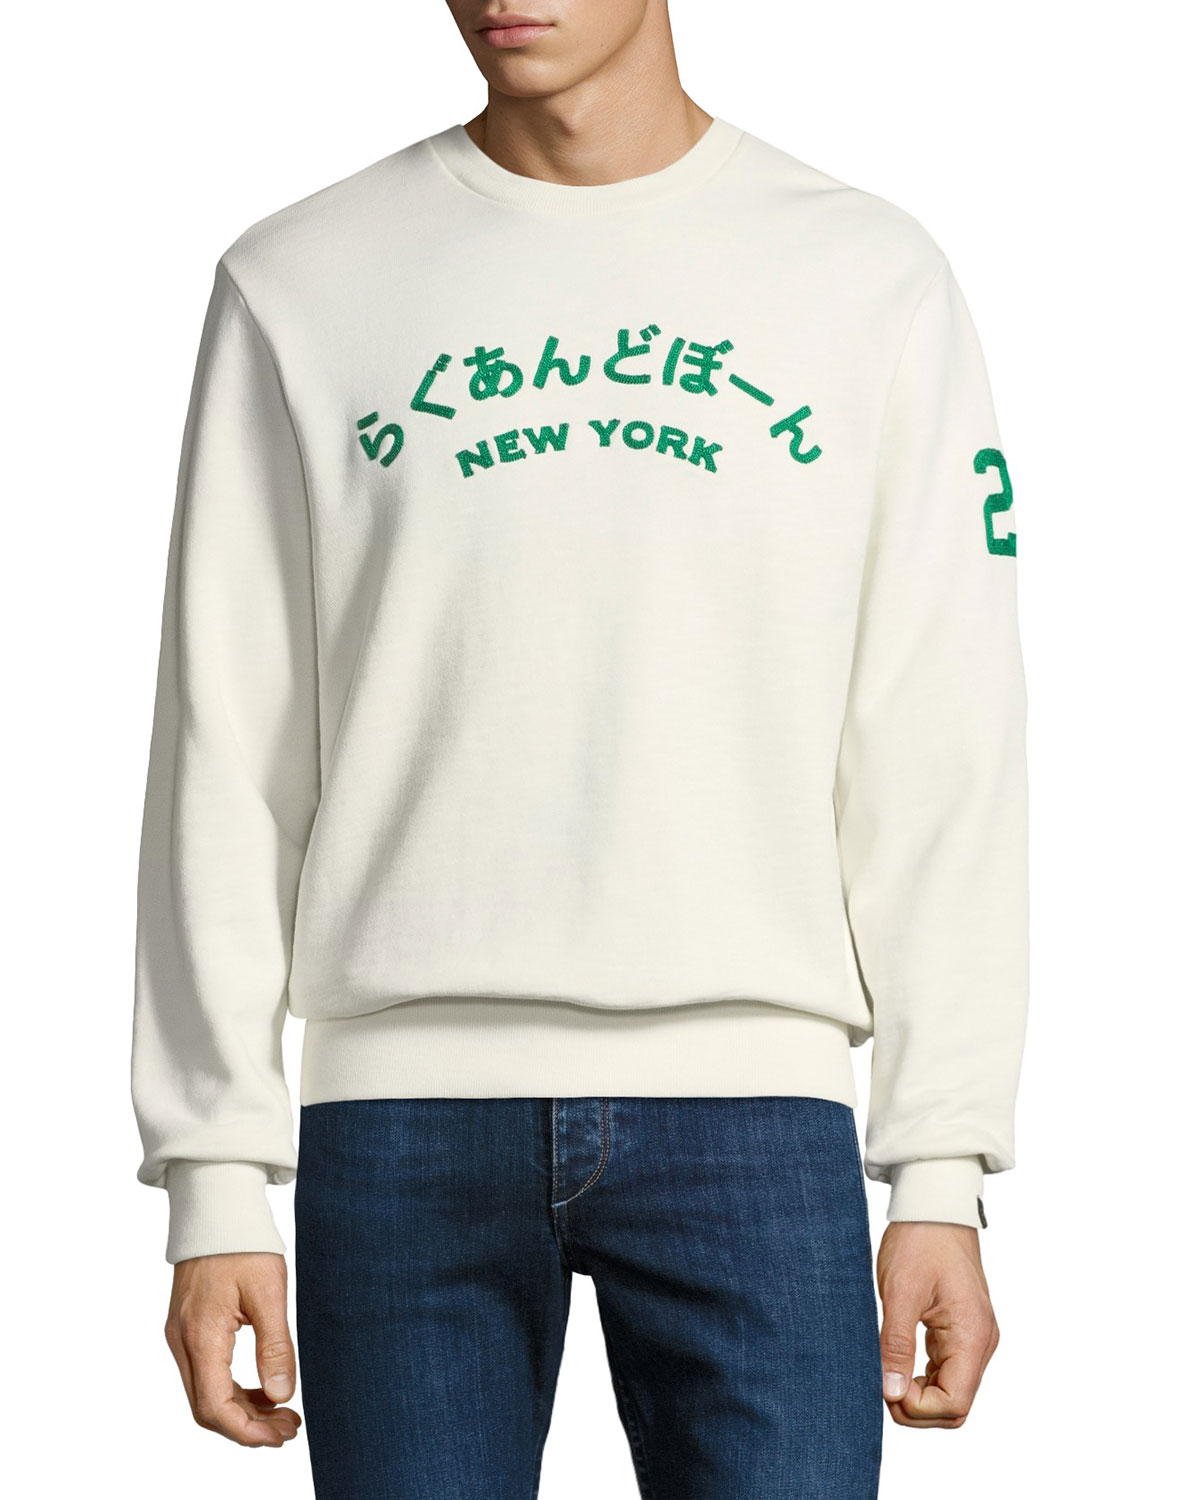 Japan Graphic Sweatshirt